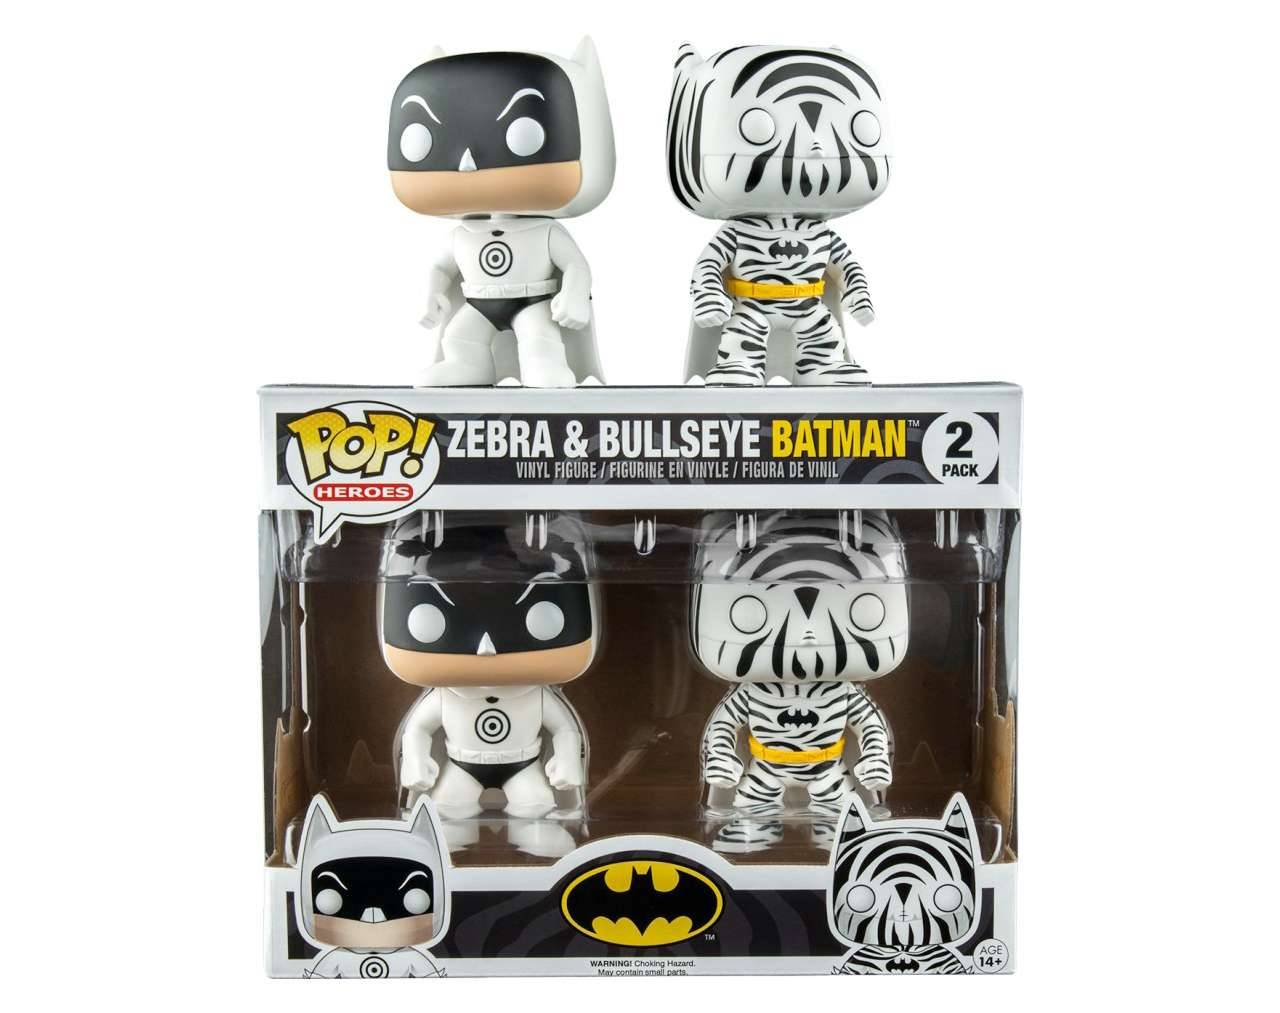 Zebra & Bullseye Batman (Double Pack) Pop! Vinyl